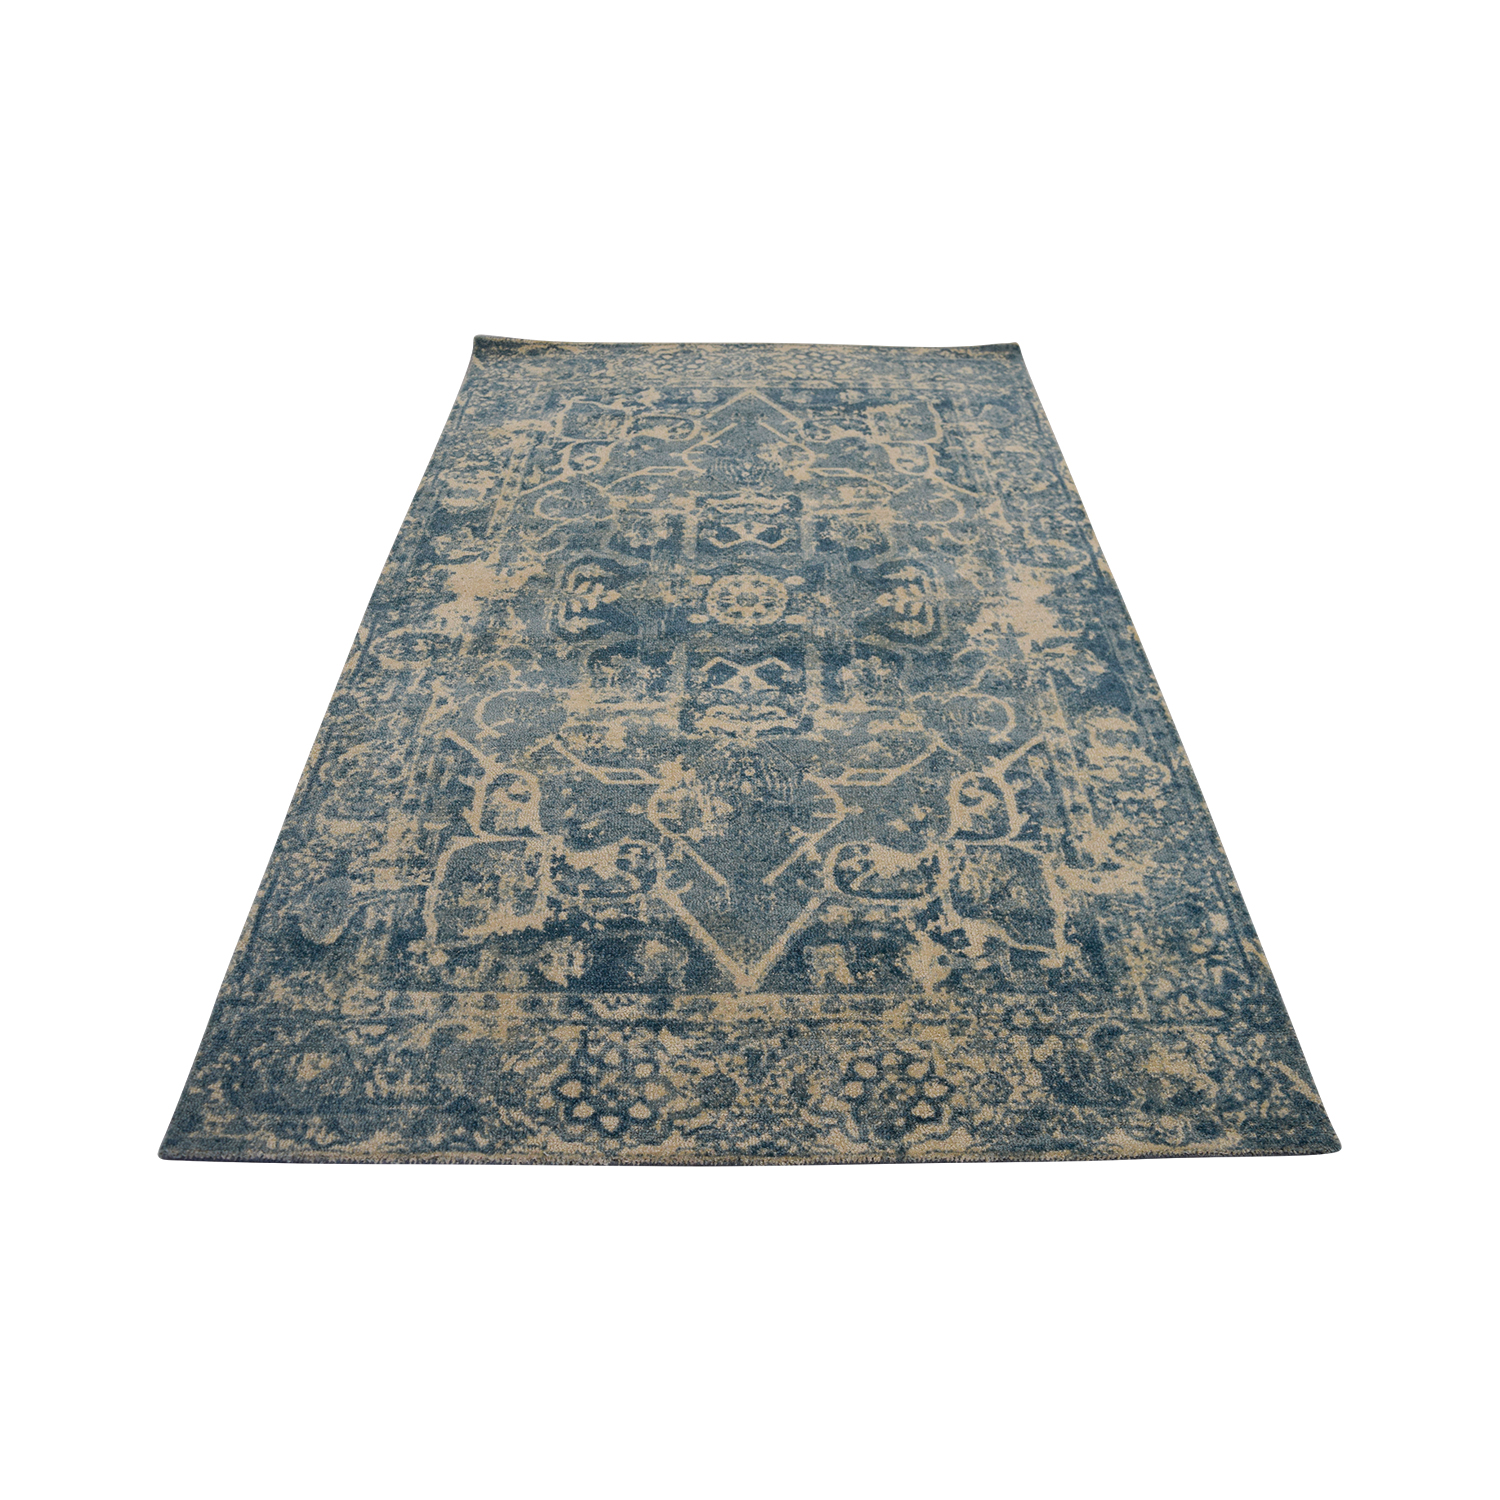 Obeetee Distressed Blue Wool Rug / Decor